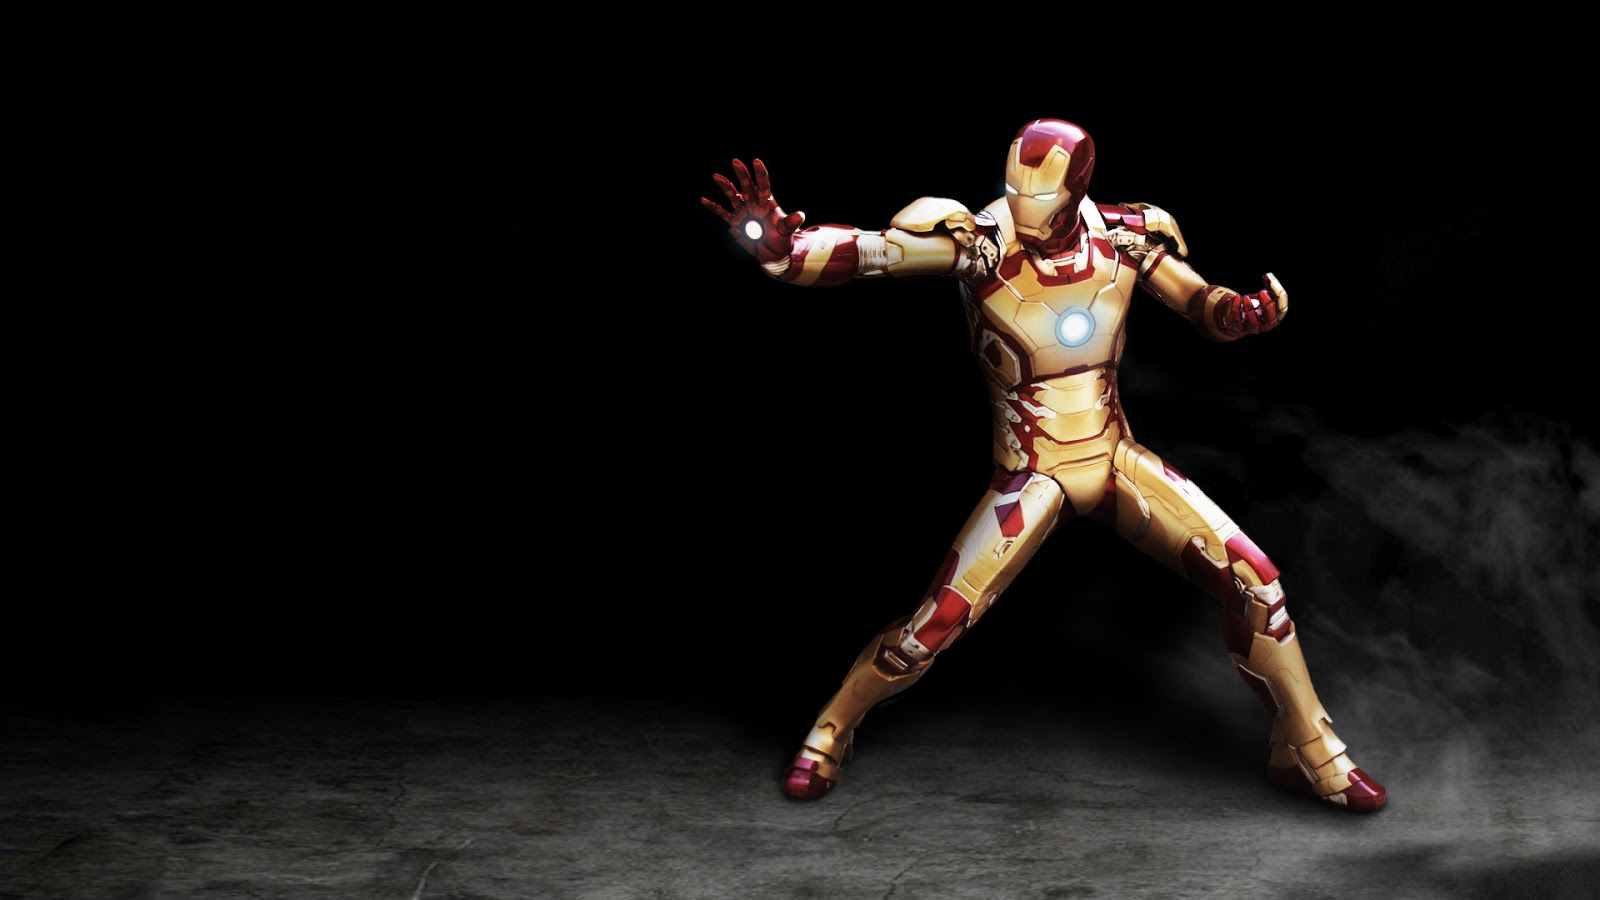 Iron Man Wallpapers Full Hd Desktop Background: IPHONE: Wallpaper Iron Man 3 HD